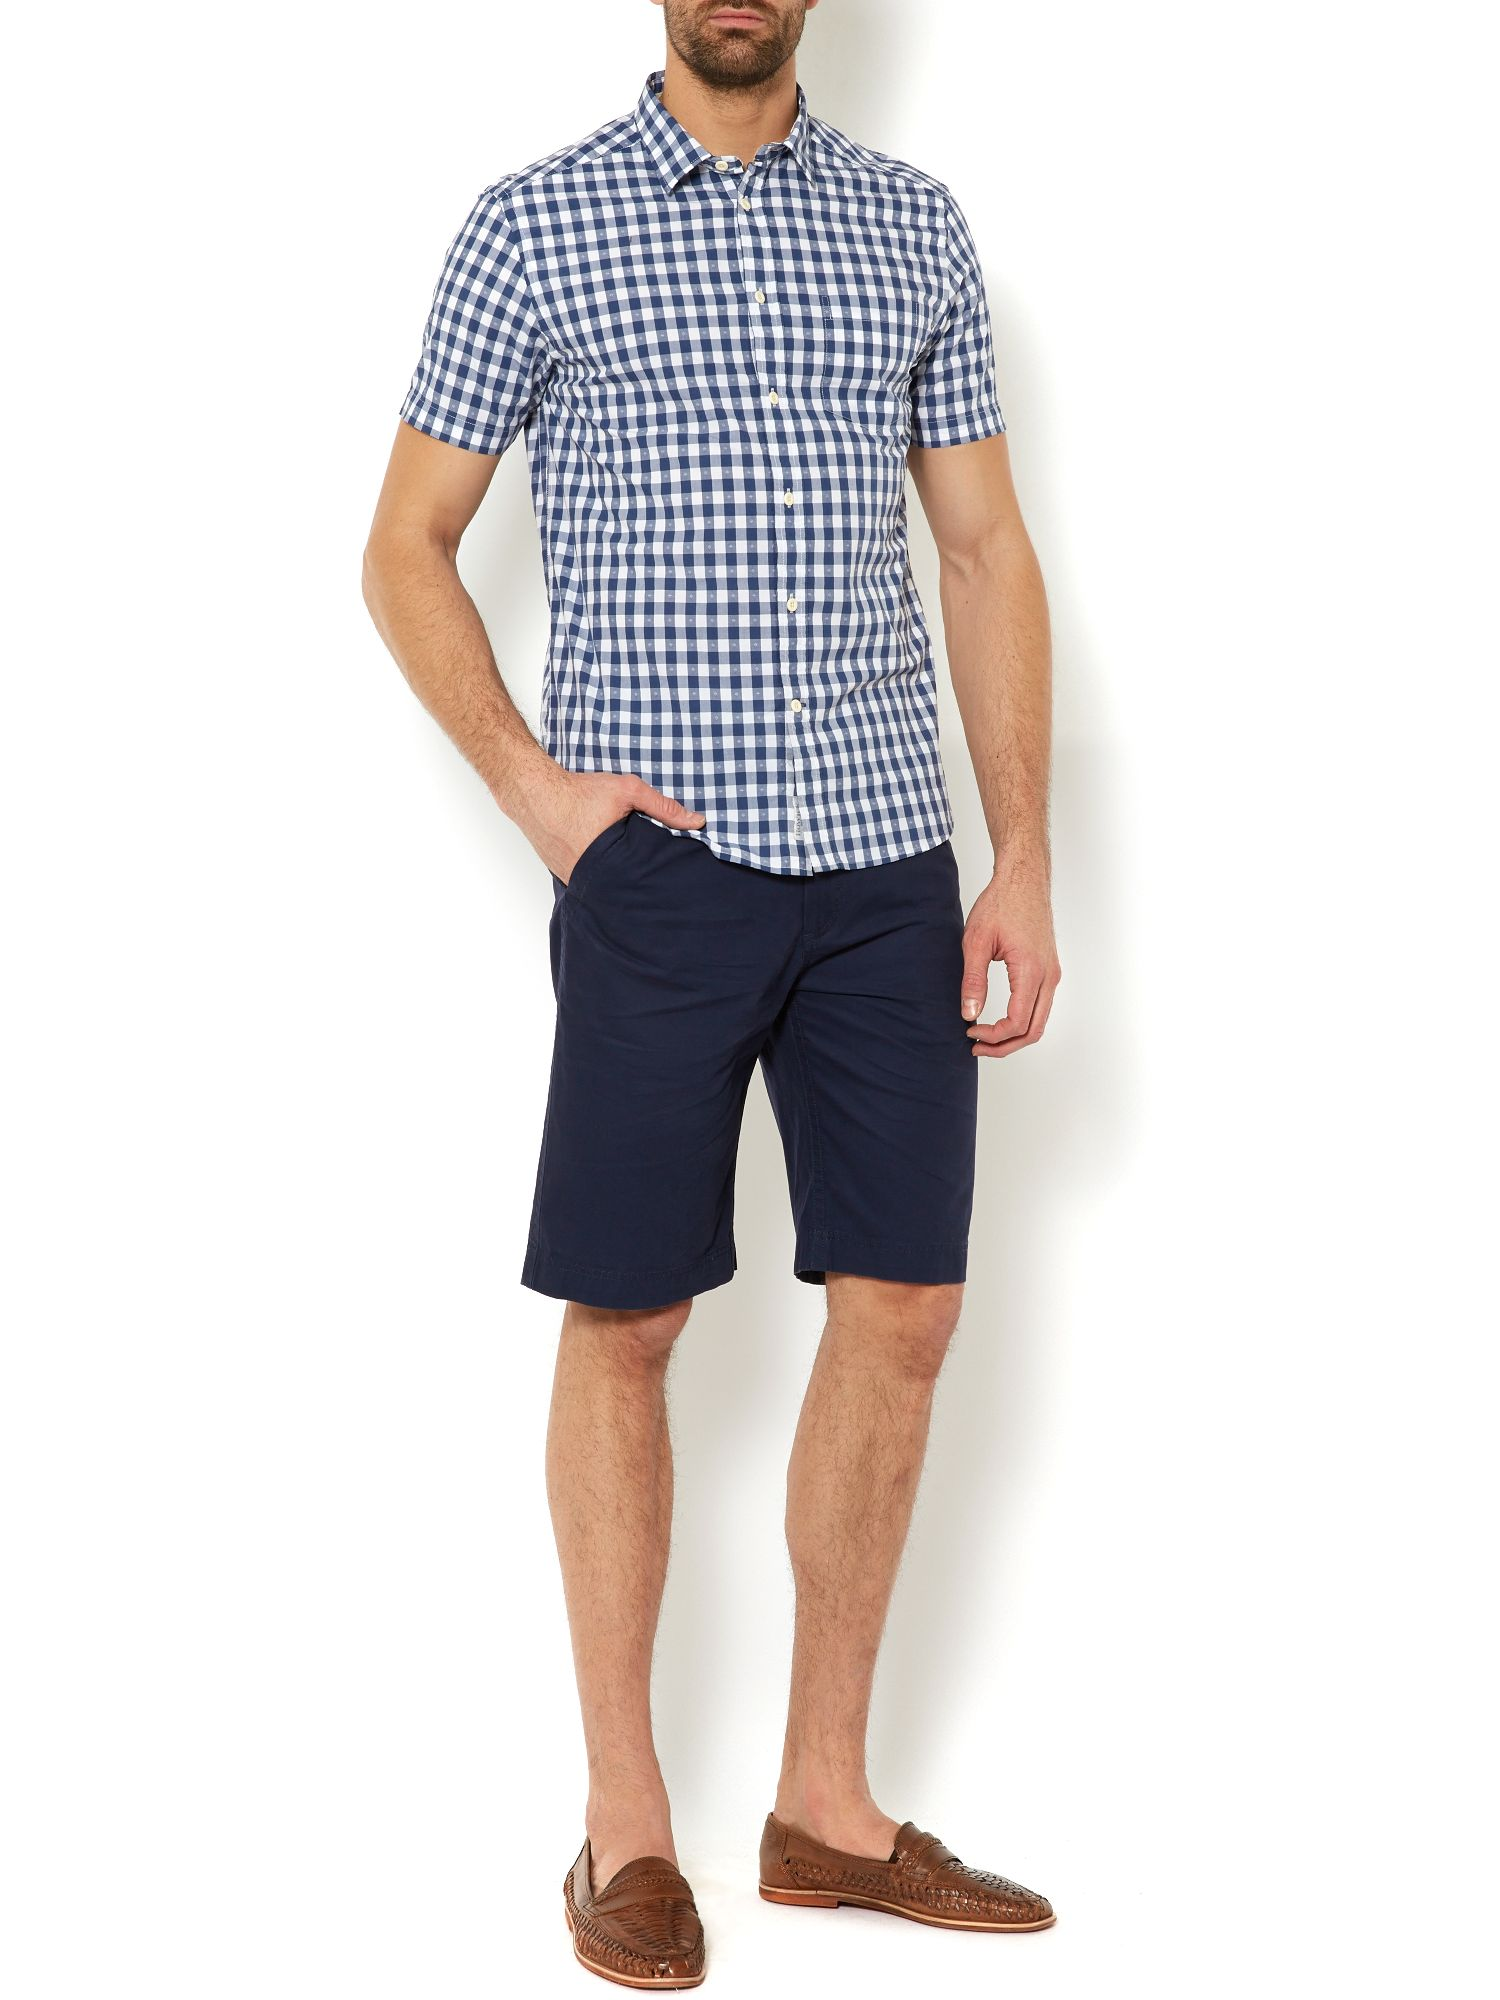 conneticut gingham check short sleeve shirt